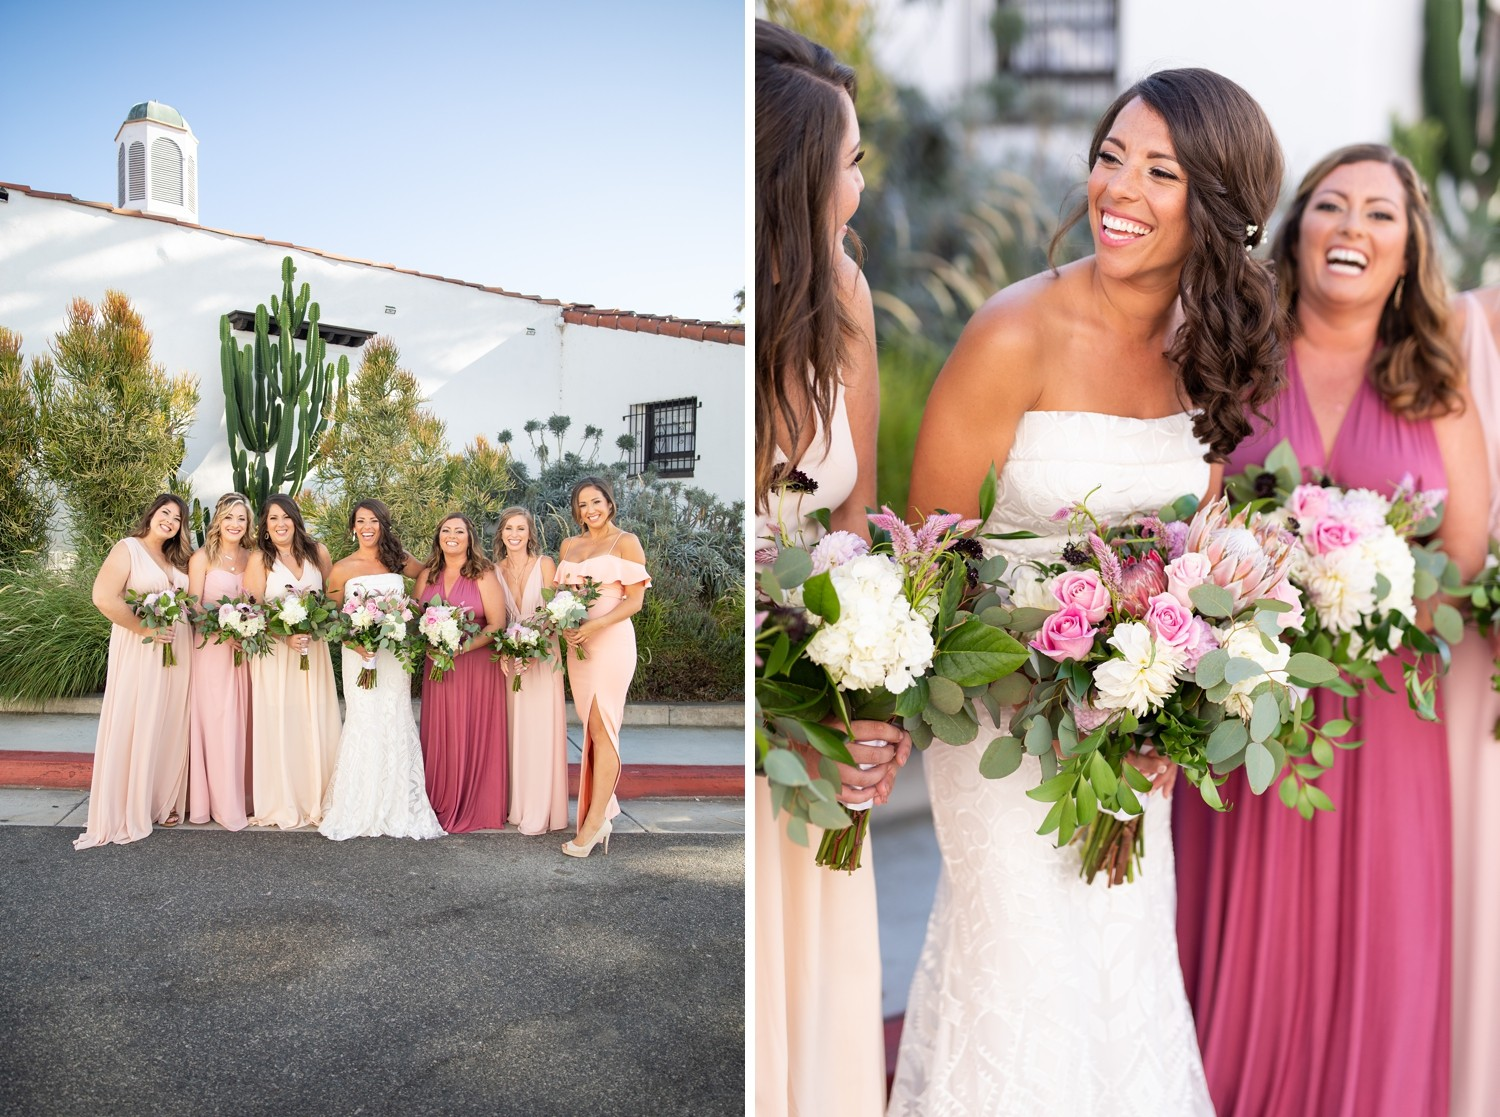 The Casino San Clemente Wedding